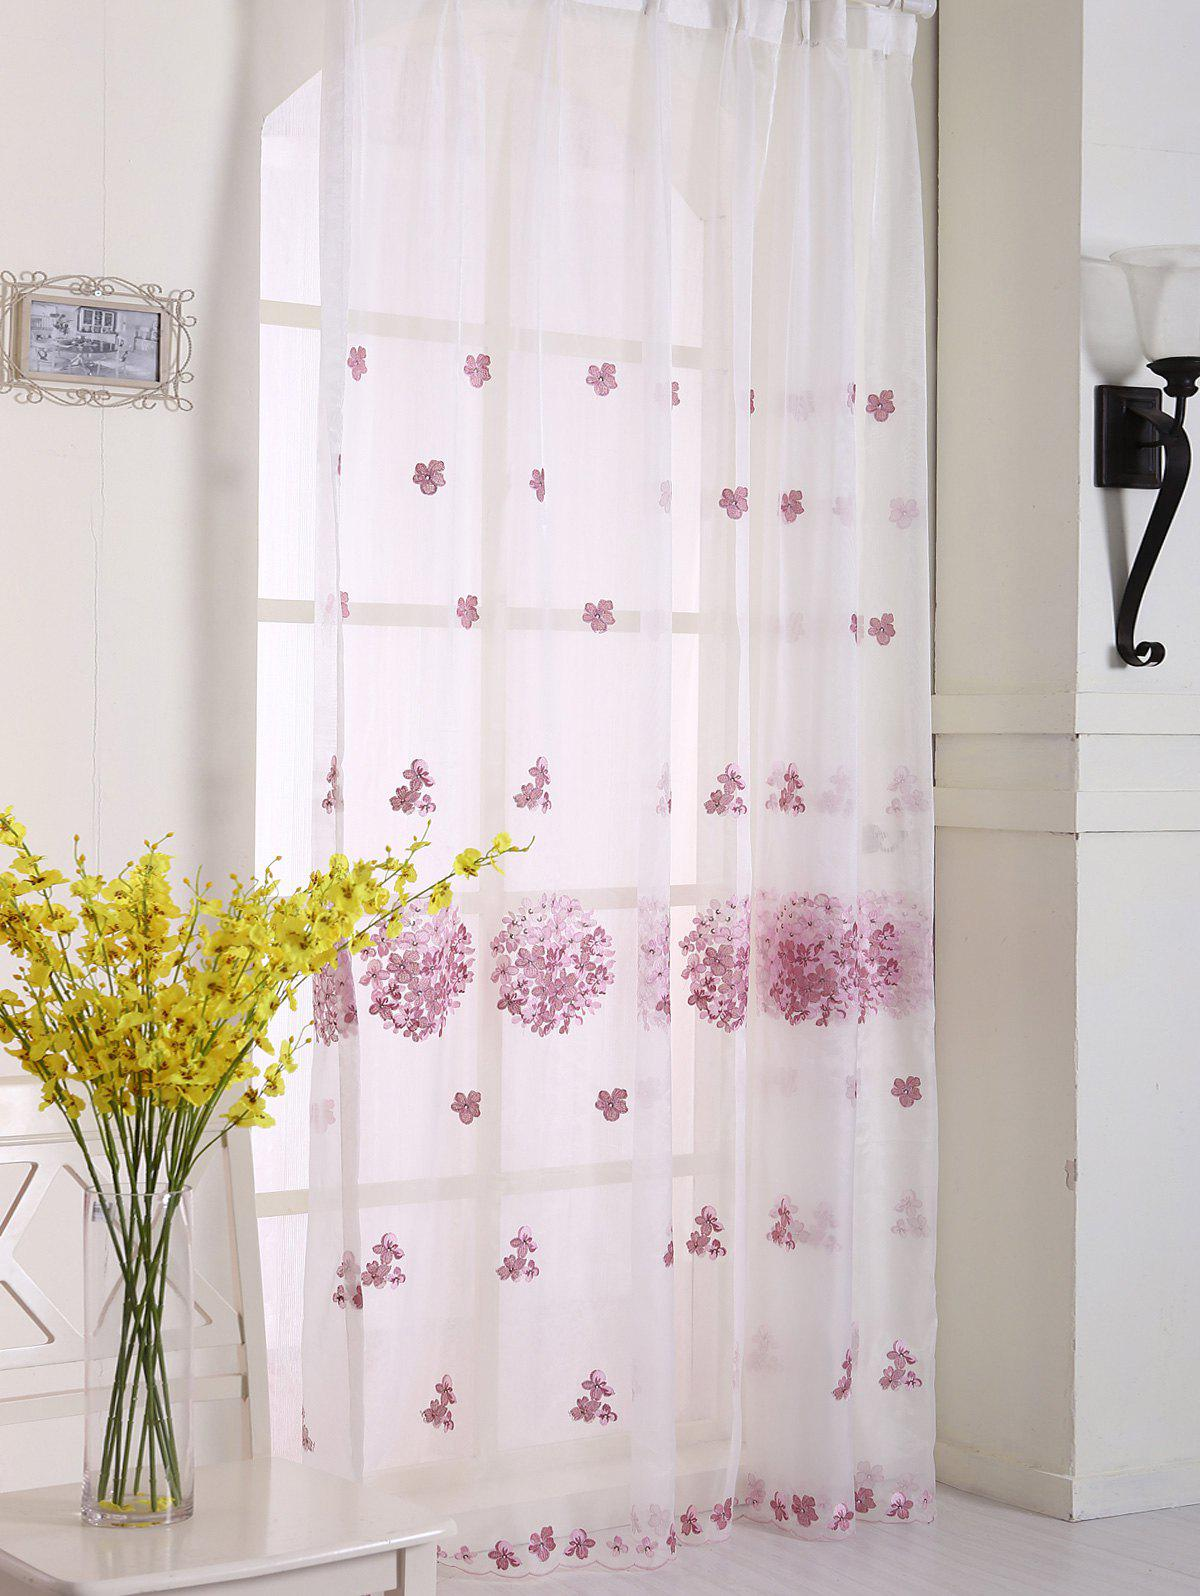 Hydrangea Print Sheer Voile Curtain Window Decor - ROSE PÂLE W54INCH*L84INCH